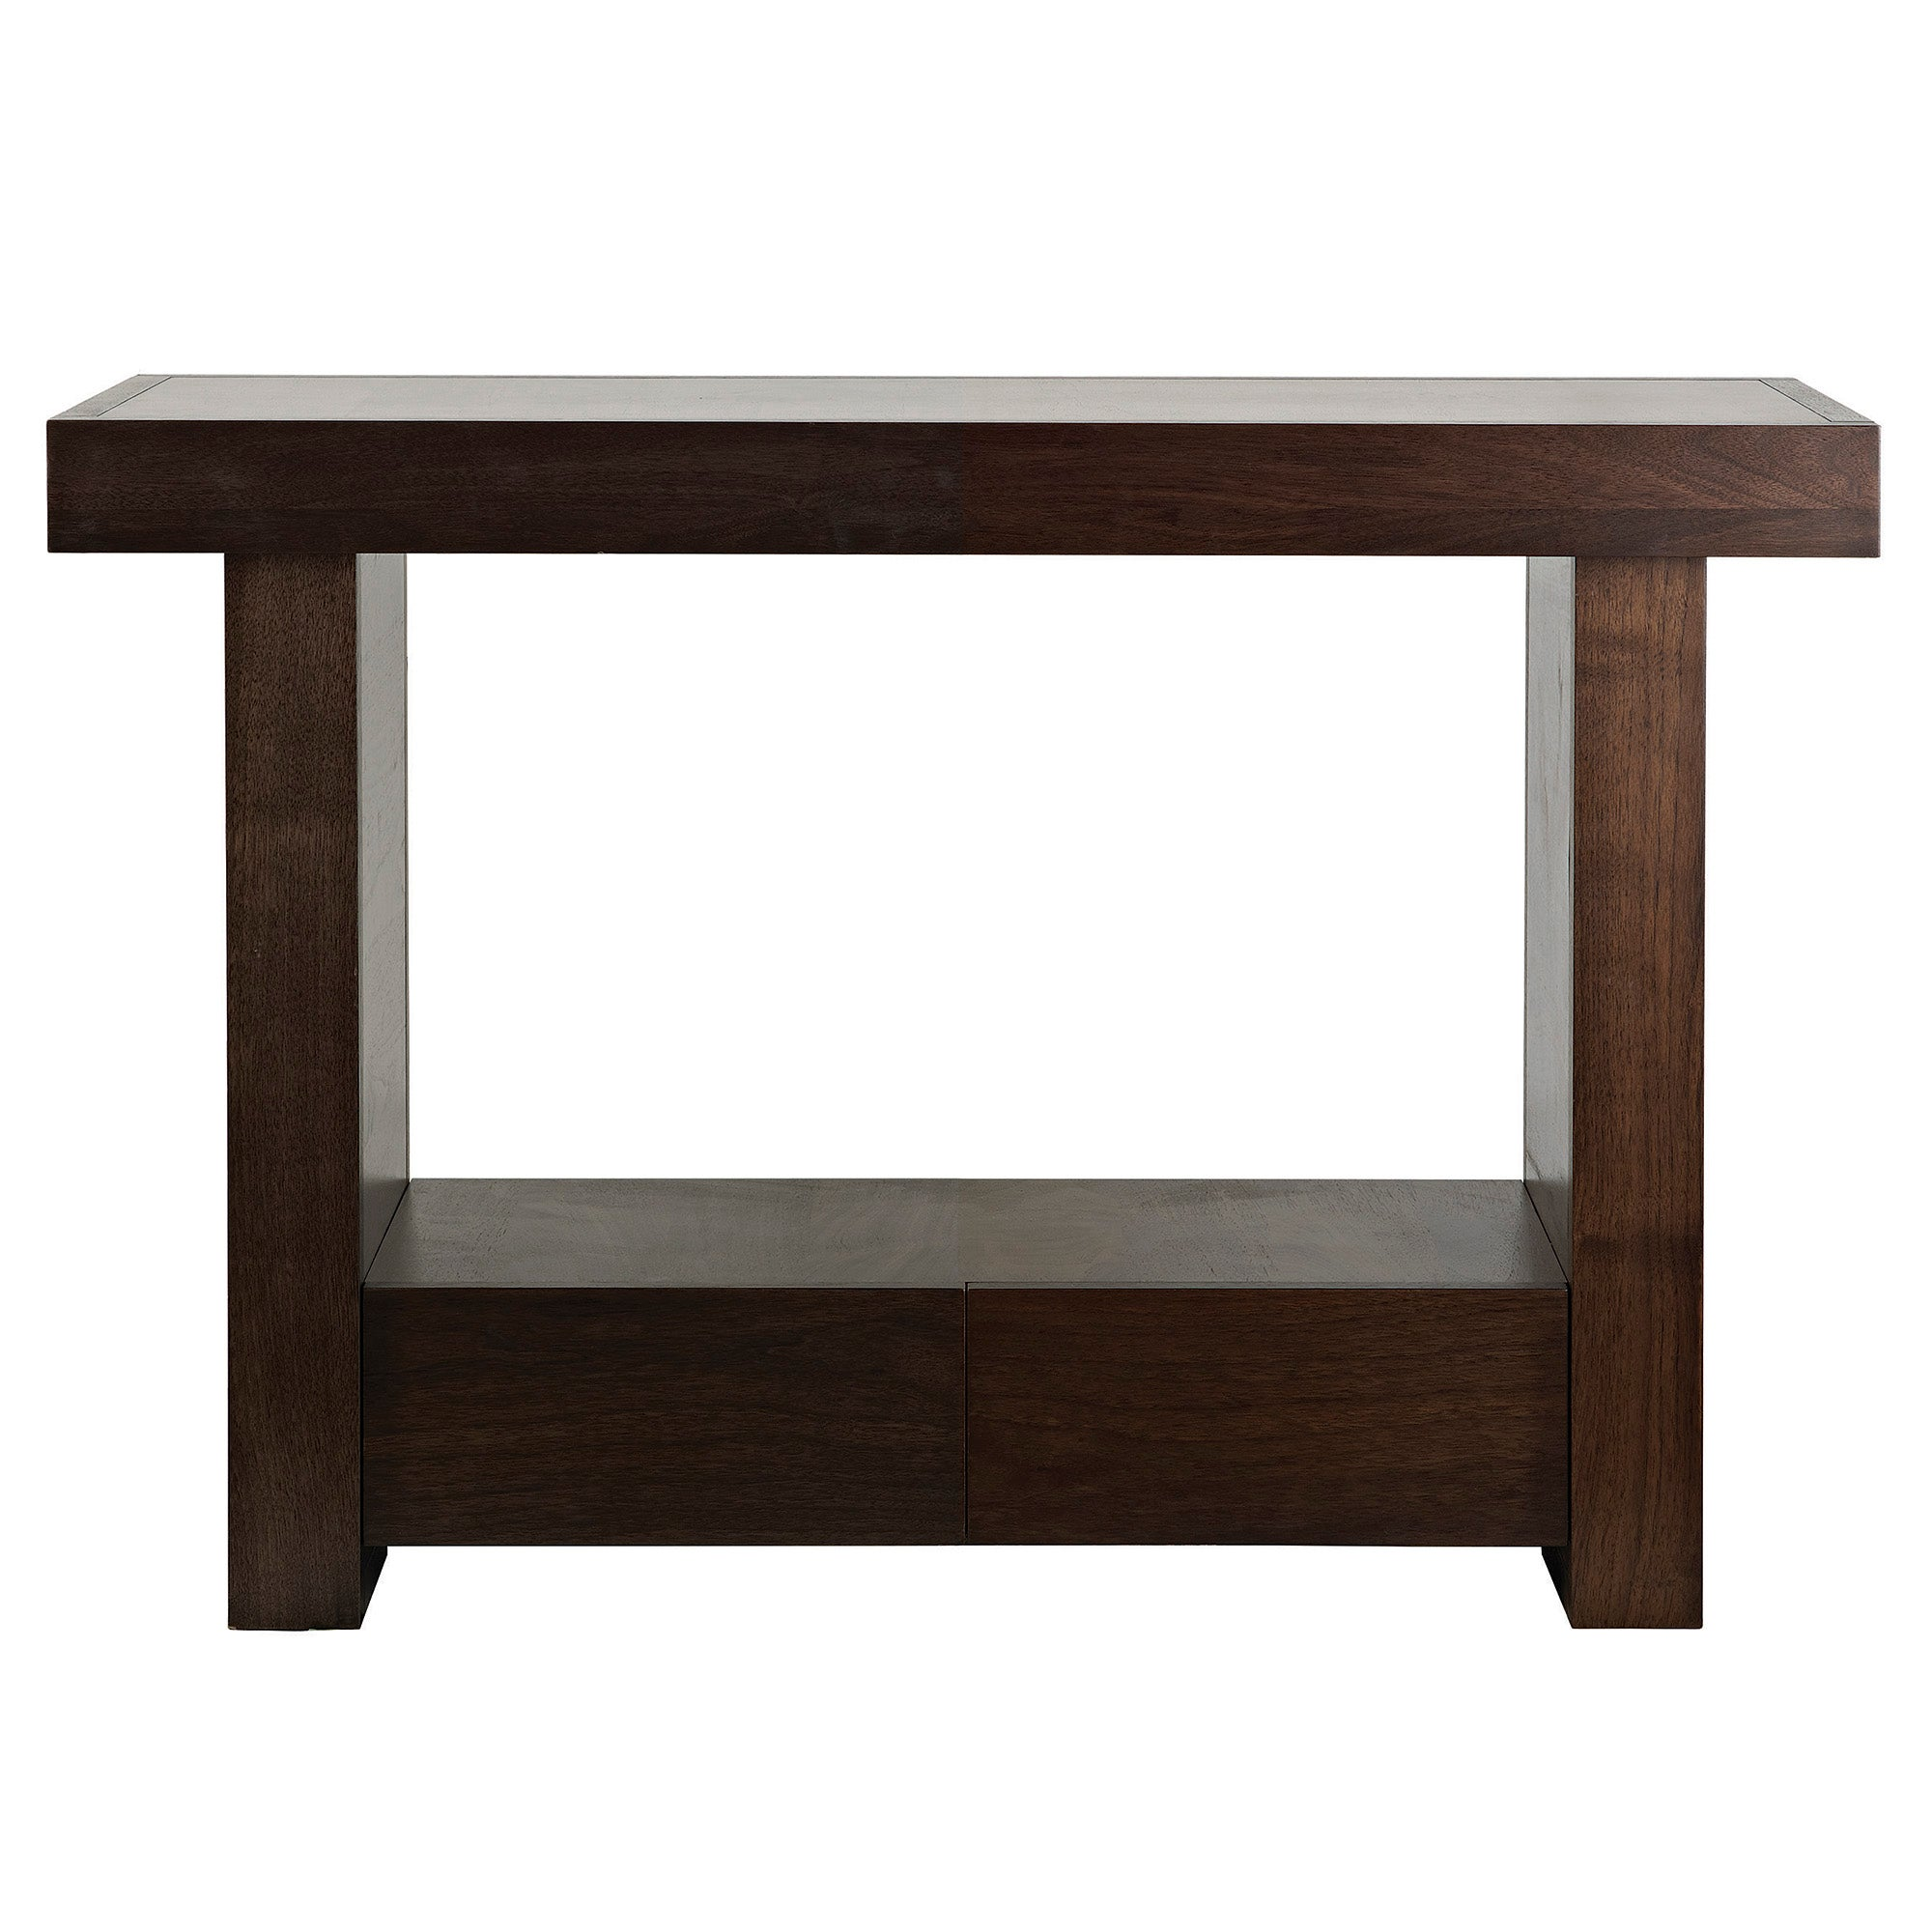 Wade walnut console table dunelm - Dunelm console table ...